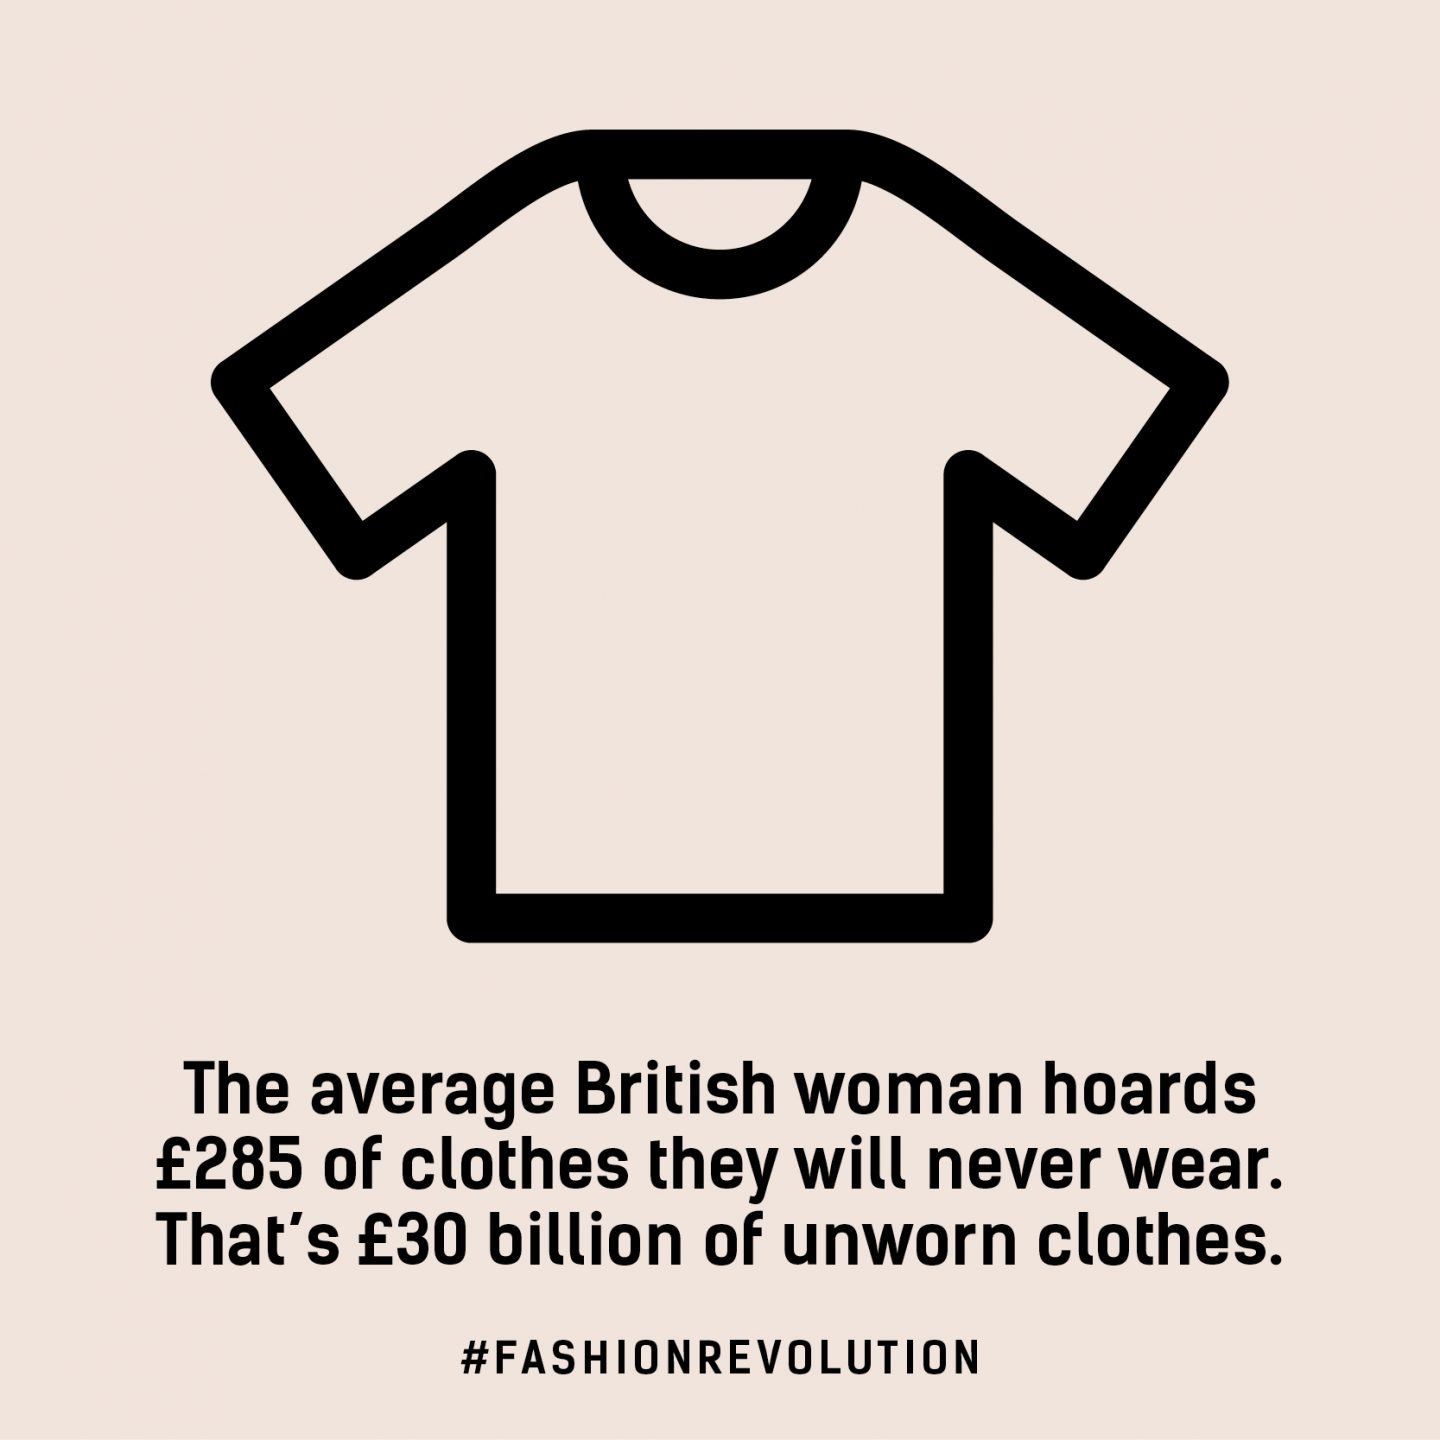 Fashion Revolution Infographic stating the average British woman hoards £285 of clothing she'll never wear